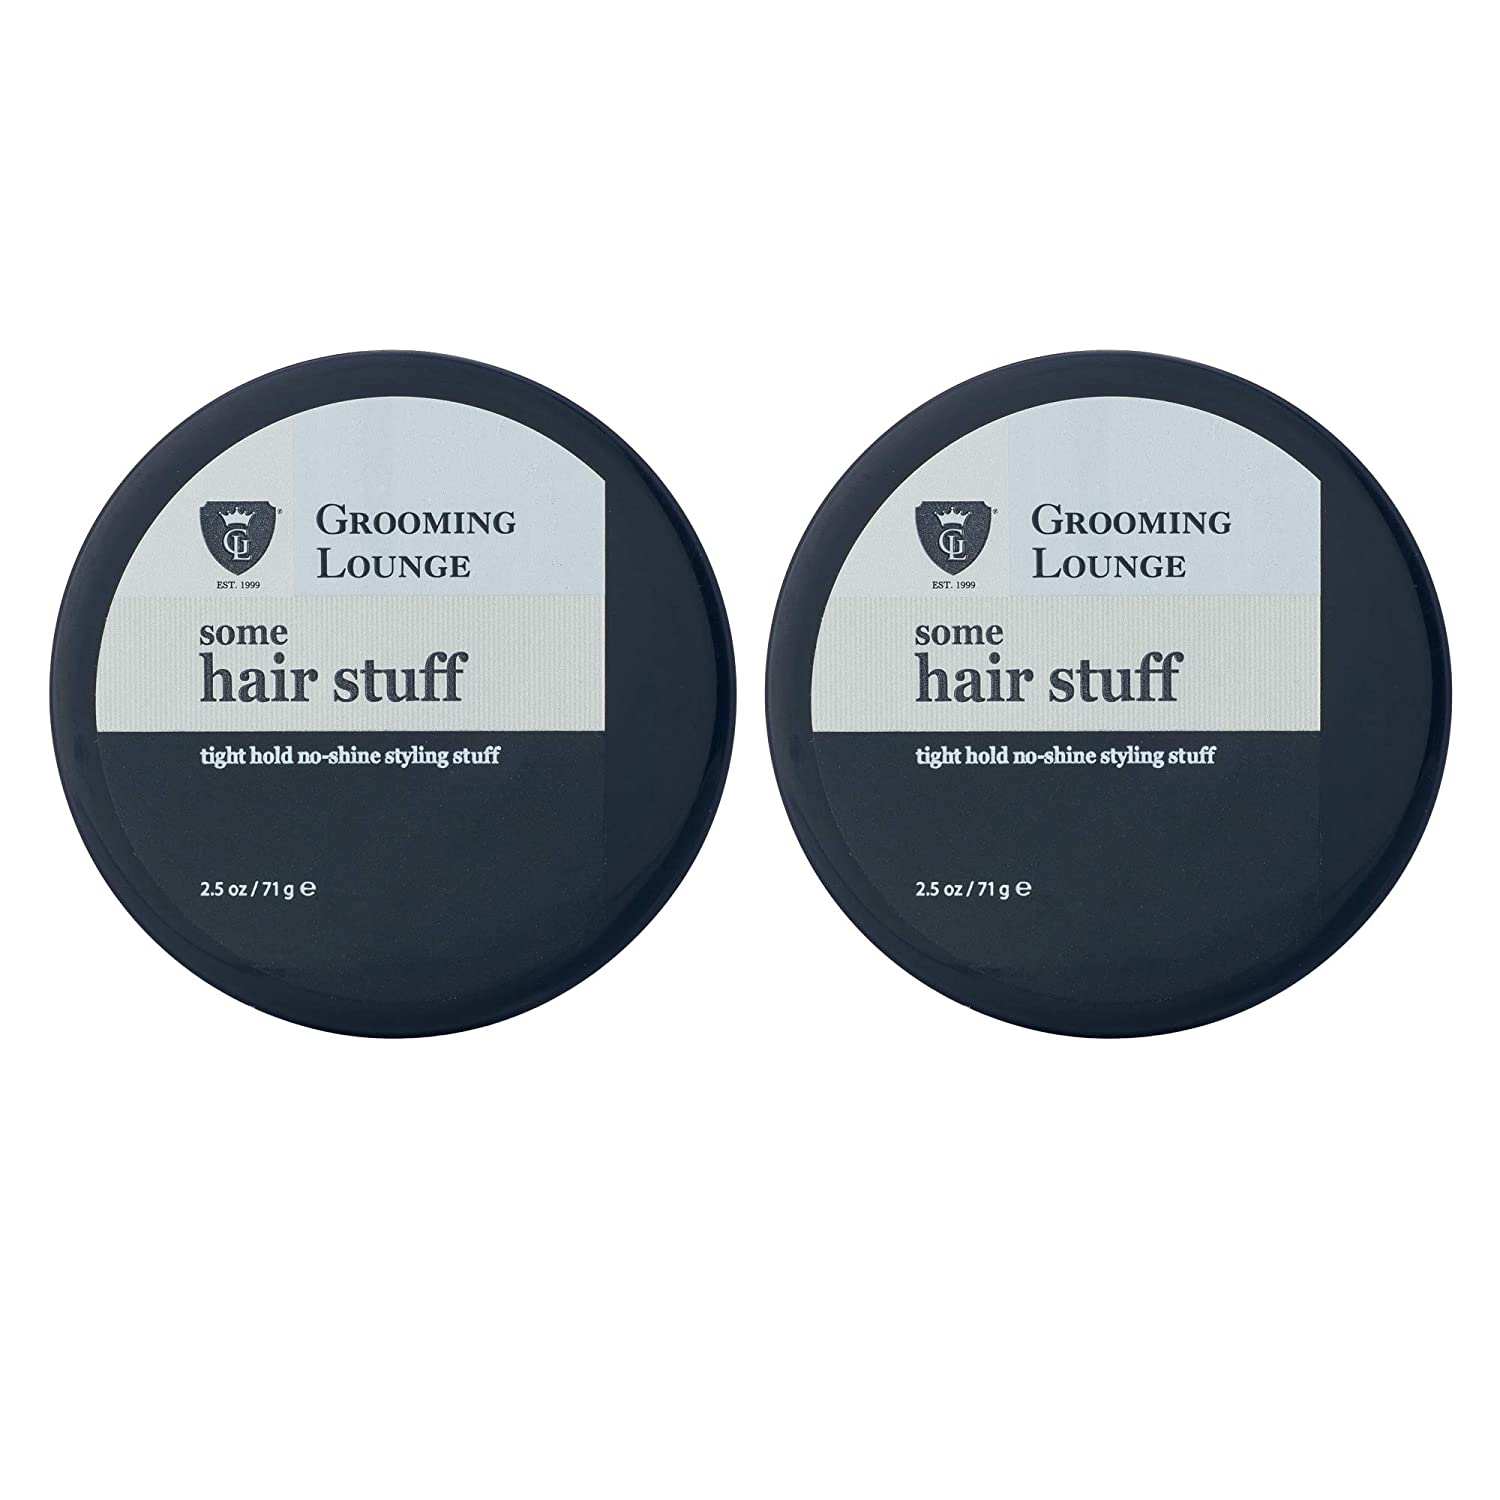 Grooming Lounge Some Hair Stuff – Strong-Hold, Mega-Pliable, No-Shine/Matte Styling Aid For Men– 2.5 oz, 2-Pack